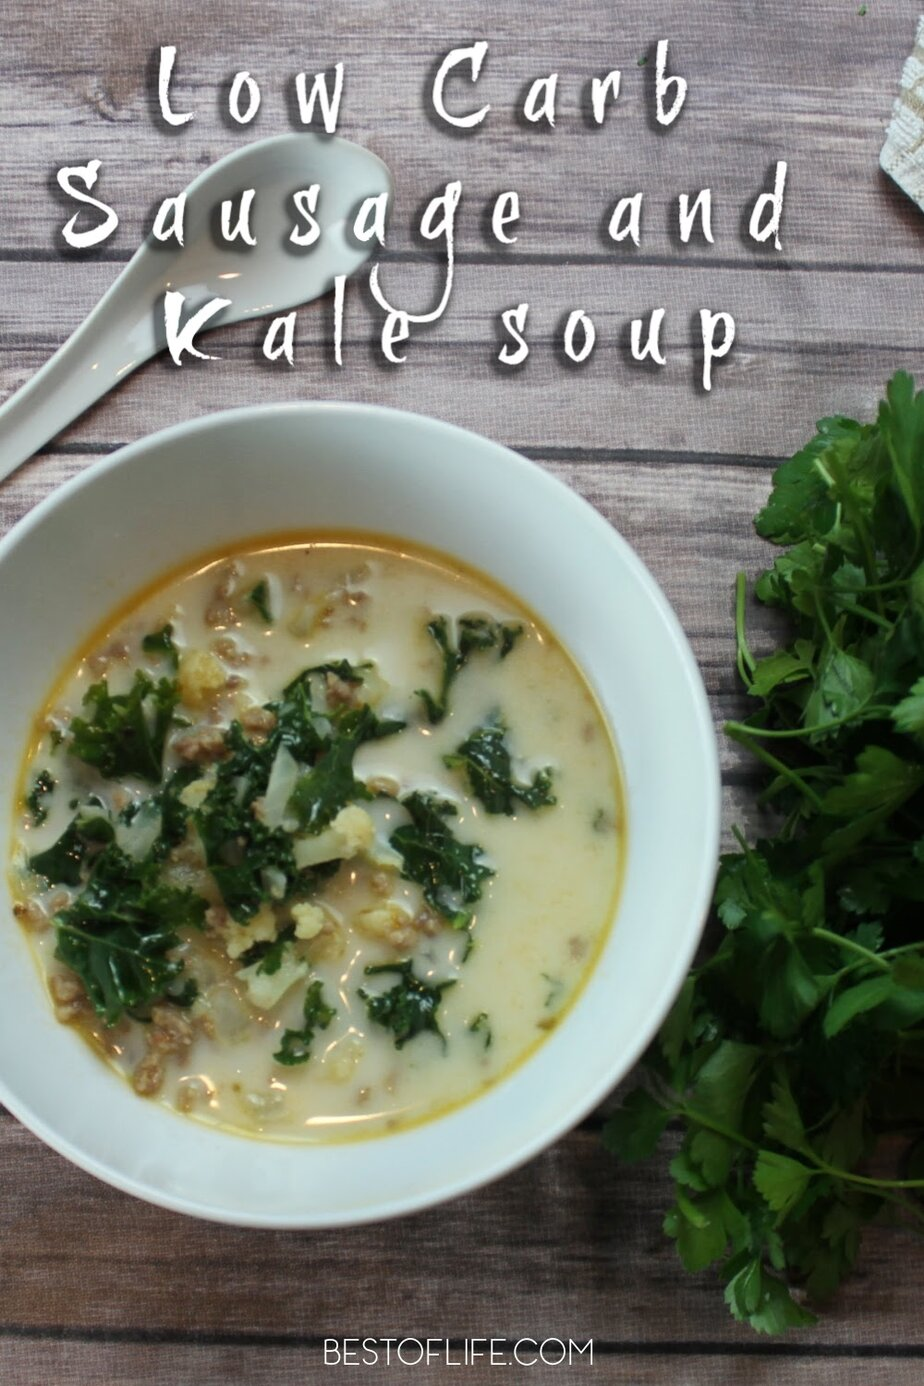 This Instant Pot creamy sausage and kale soup is perfect for family meals and you can easily scale the recipe for a delicious party food. Low Carb Recipes | Healthy Instant Pot Soup Recipes | Recipes with Kale | Instant Pot Dinner Recipes | Easy Instant Pot Recipes | Soup Dinner Recipes #Instant Pot #soup